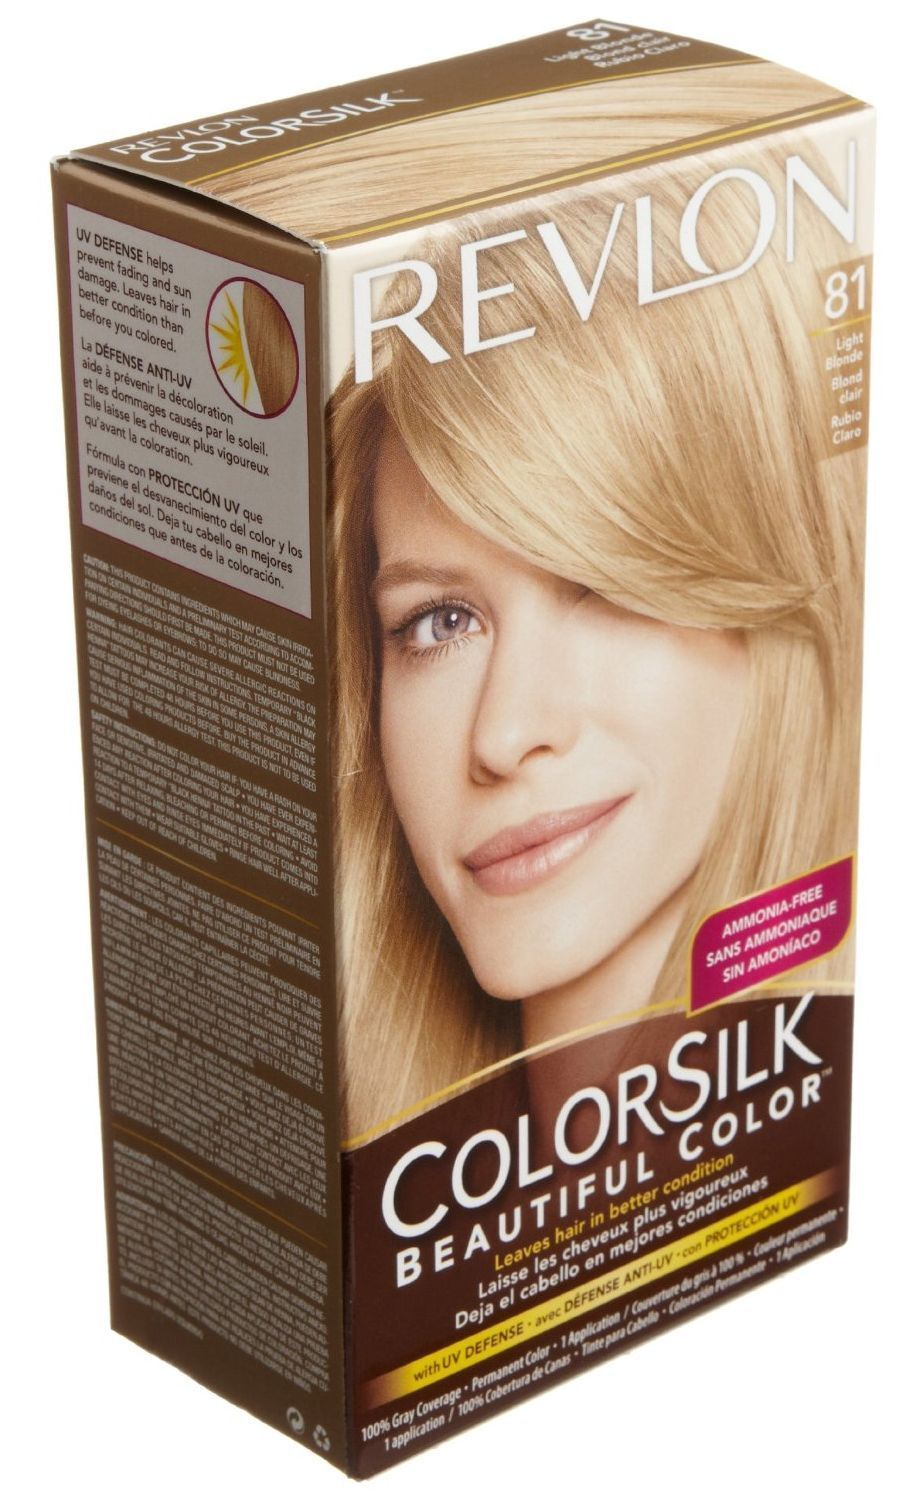 Revlon Colorsilk Light Blonde 81 Beautiful Hair Dye Color [J4 ...